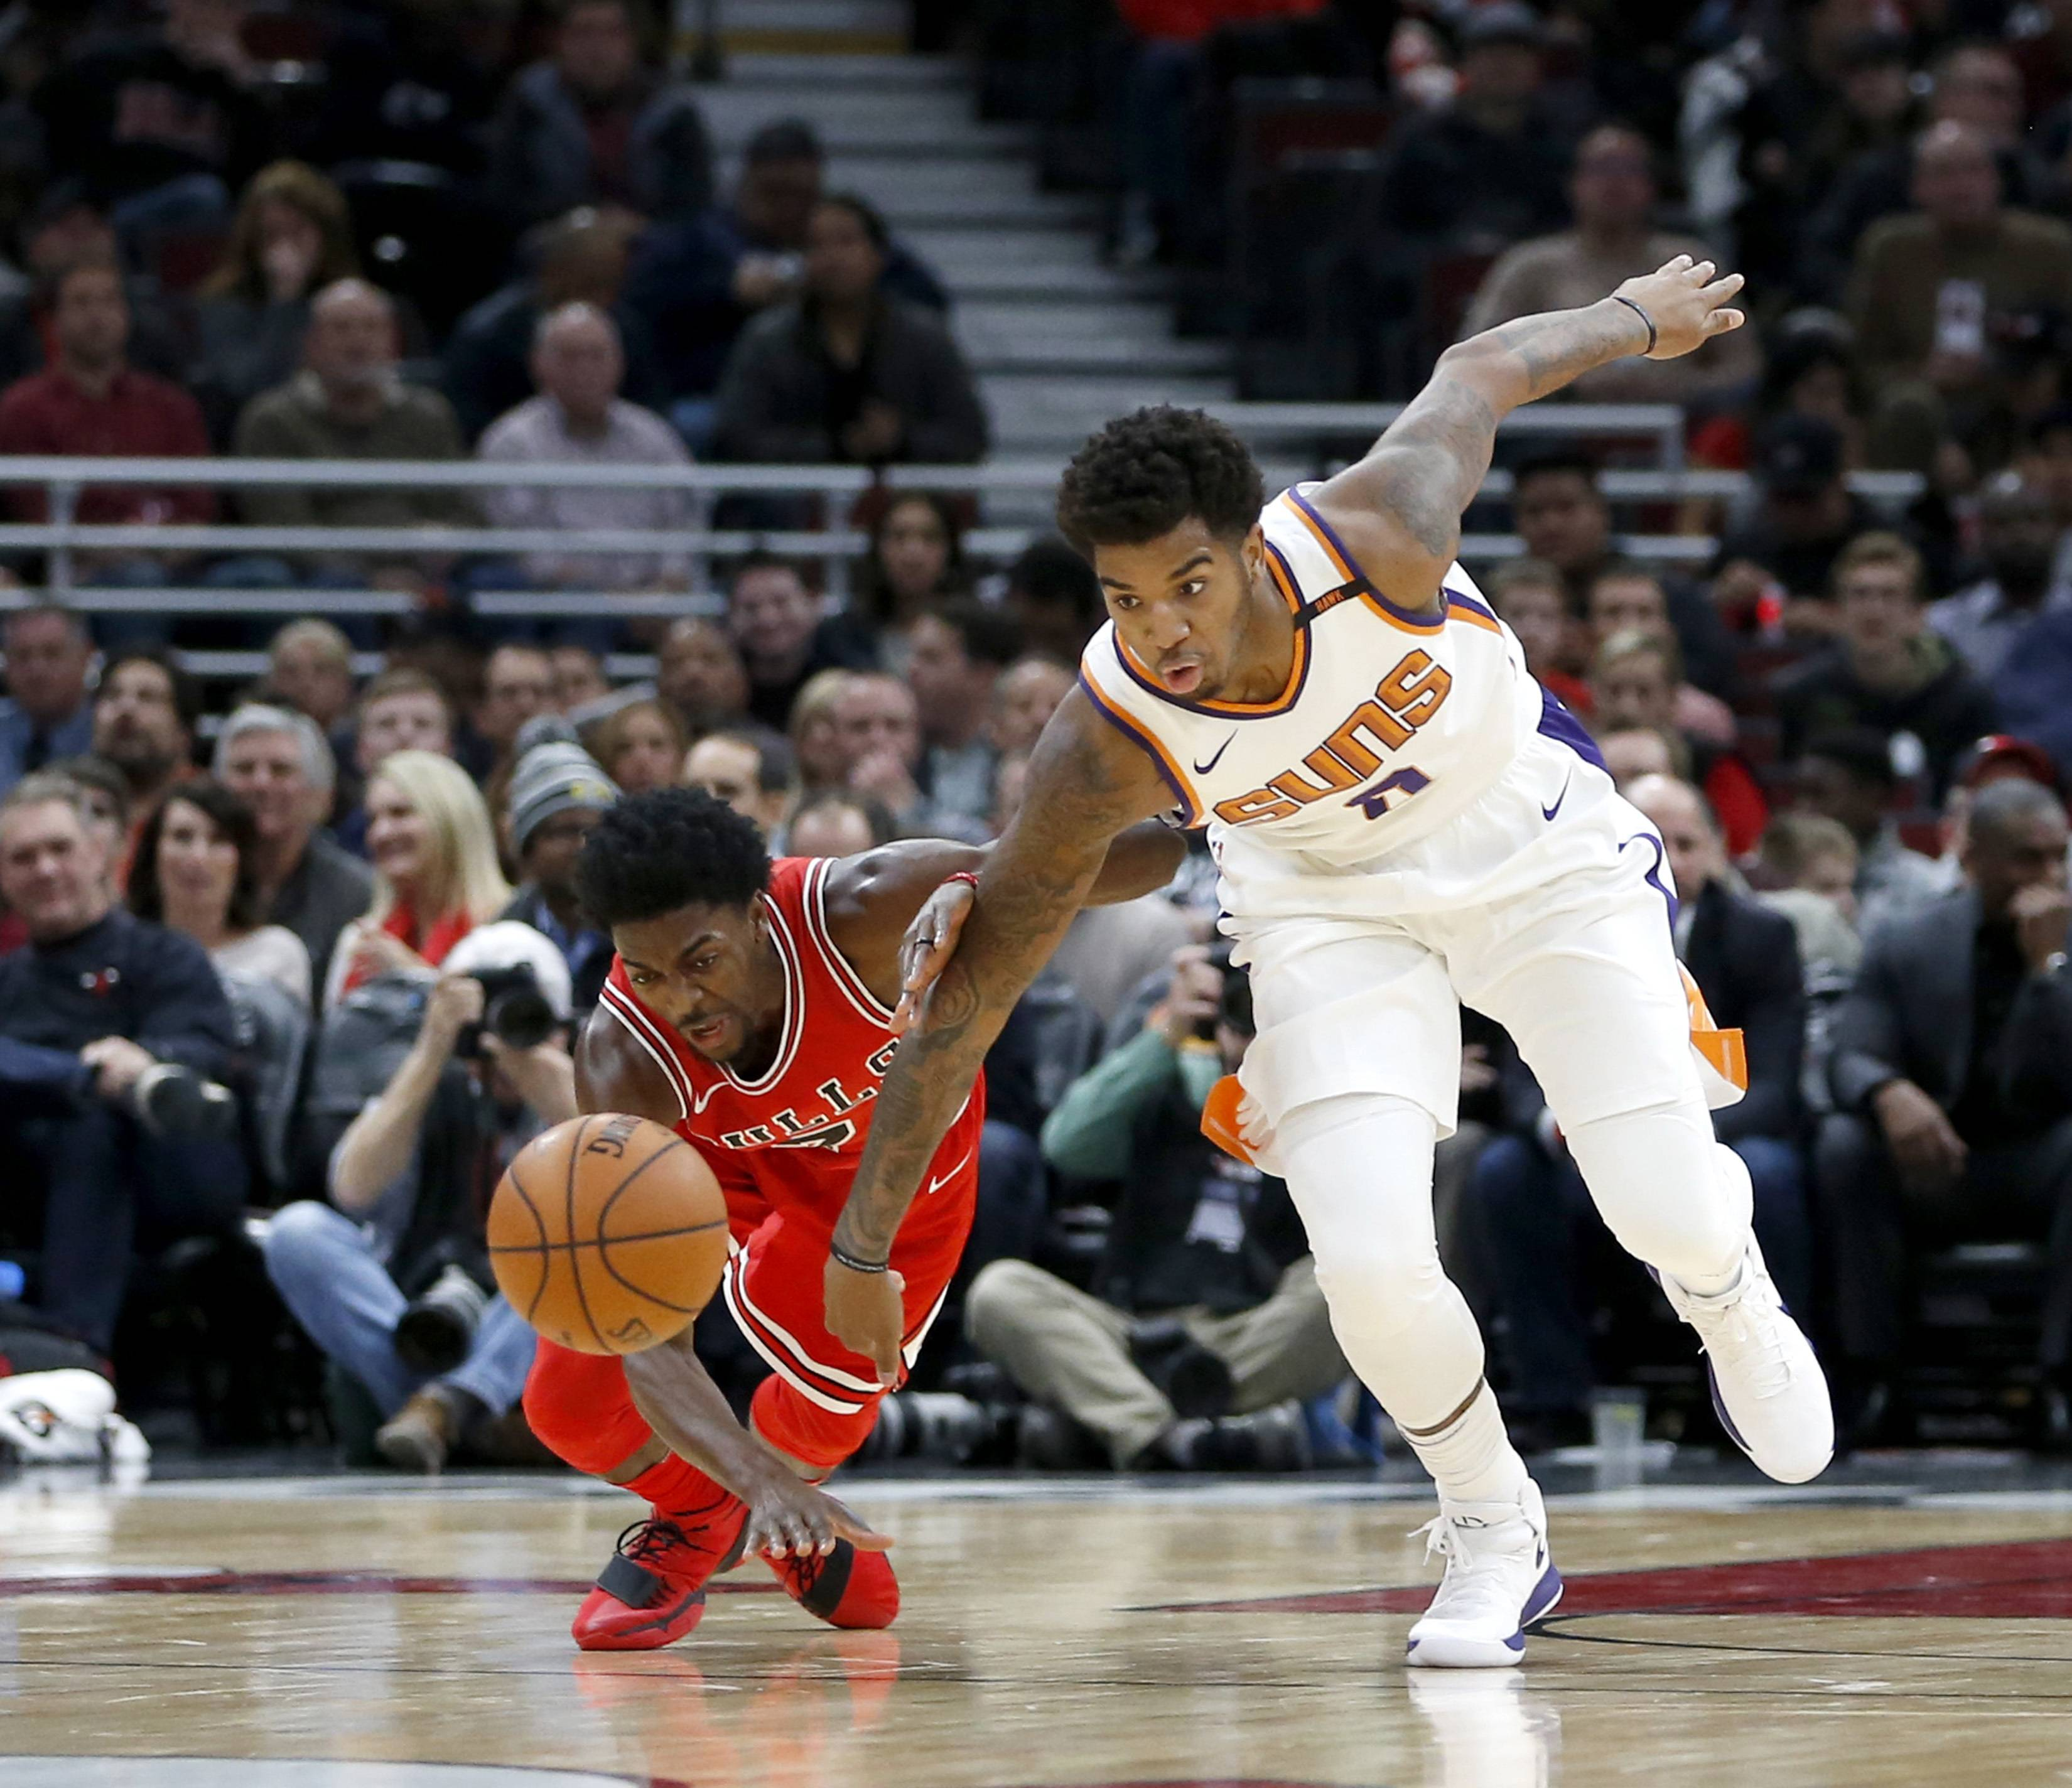 Chicago Bulls' Justin Holiday (7) and Phoenix Suns' Marquese Chriss battle for a loose ball during the first half of an NBA basketball game Tuesday, Nov. 28, 2017, in Chicago.